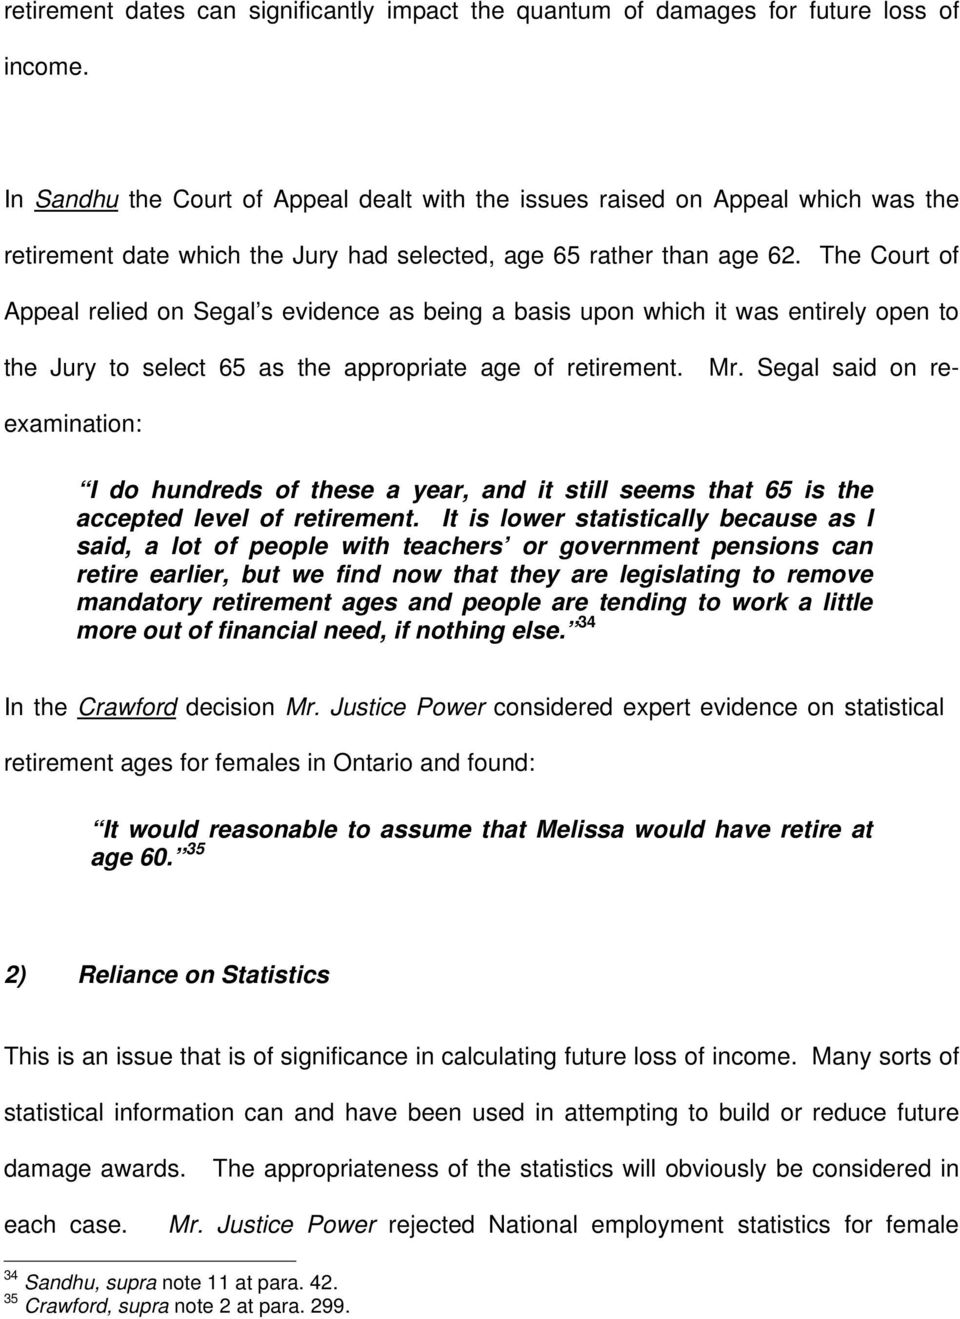 The Court of Appeal relied on Segal s evidence as being a basis upon which it was entirely open to the Jury to select 65 as the appropriate age of retirement. Mr.